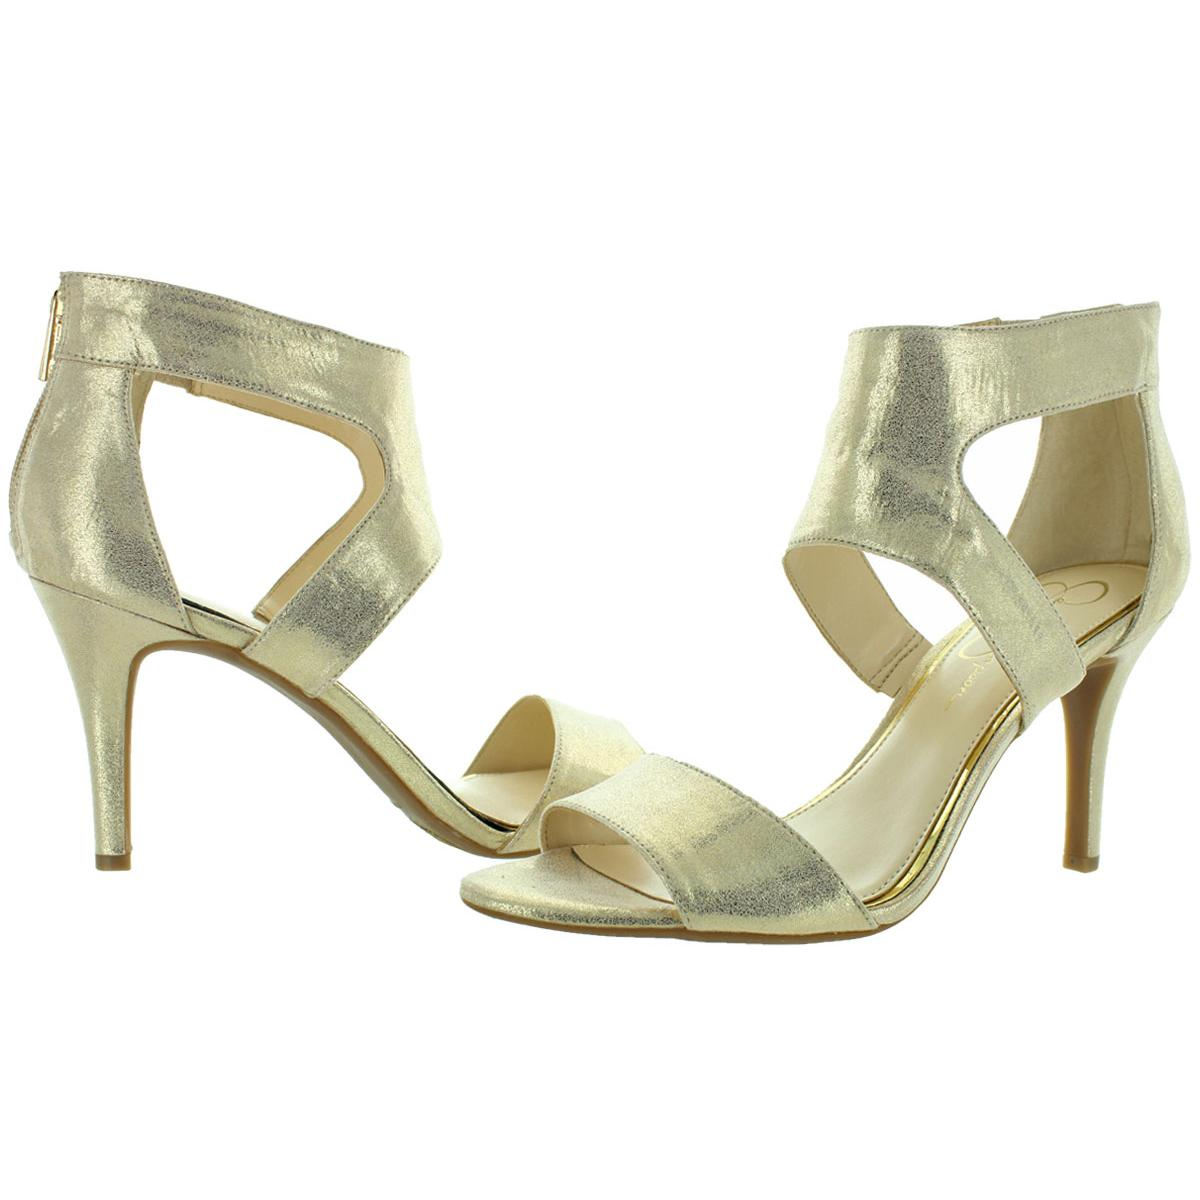 Jessica-Simpson-Mekos-Women-039-s-Open-Toe-Dress-Sandals-Heels thumbnail 4